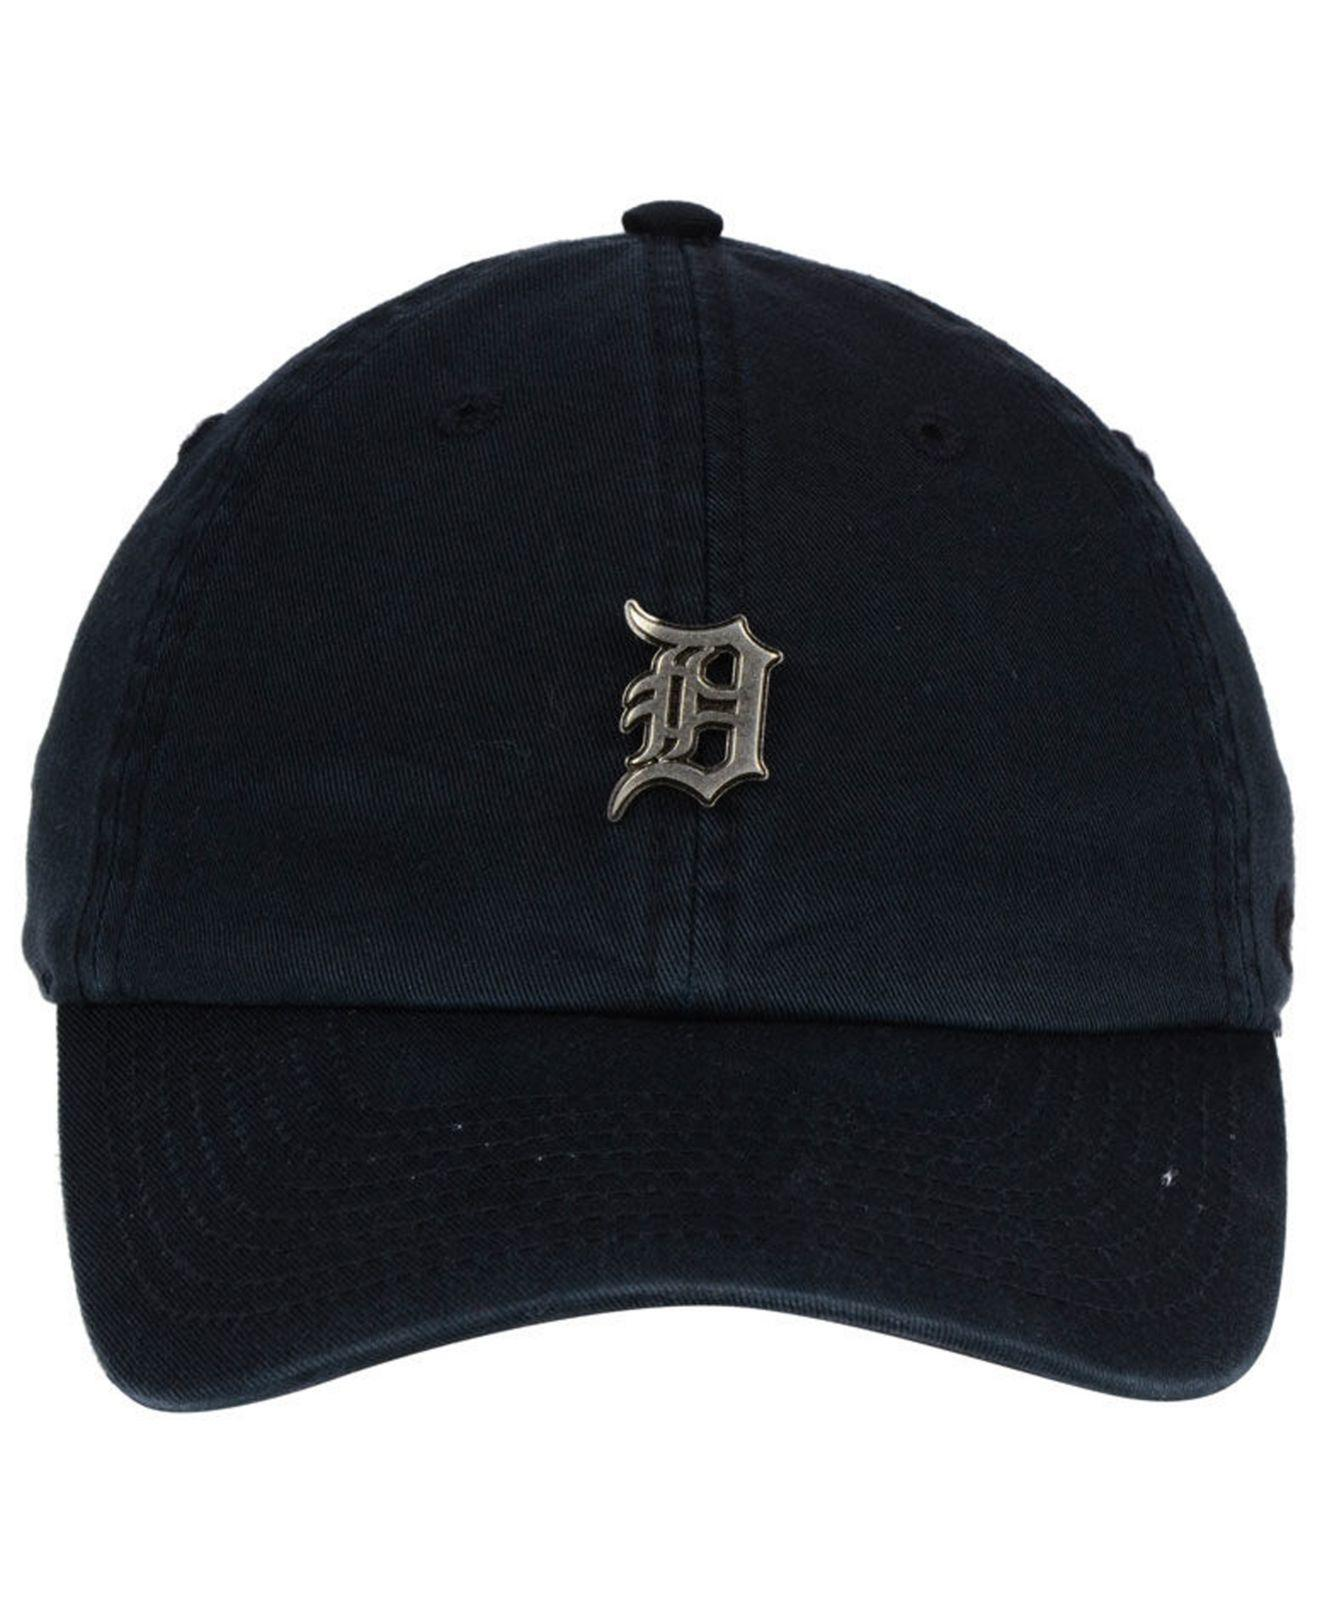 uk availability e5dc4 12268 ... germany lyst 47 brand detroit tigers hardware clean up cap in black for  men db8f4 a63d6